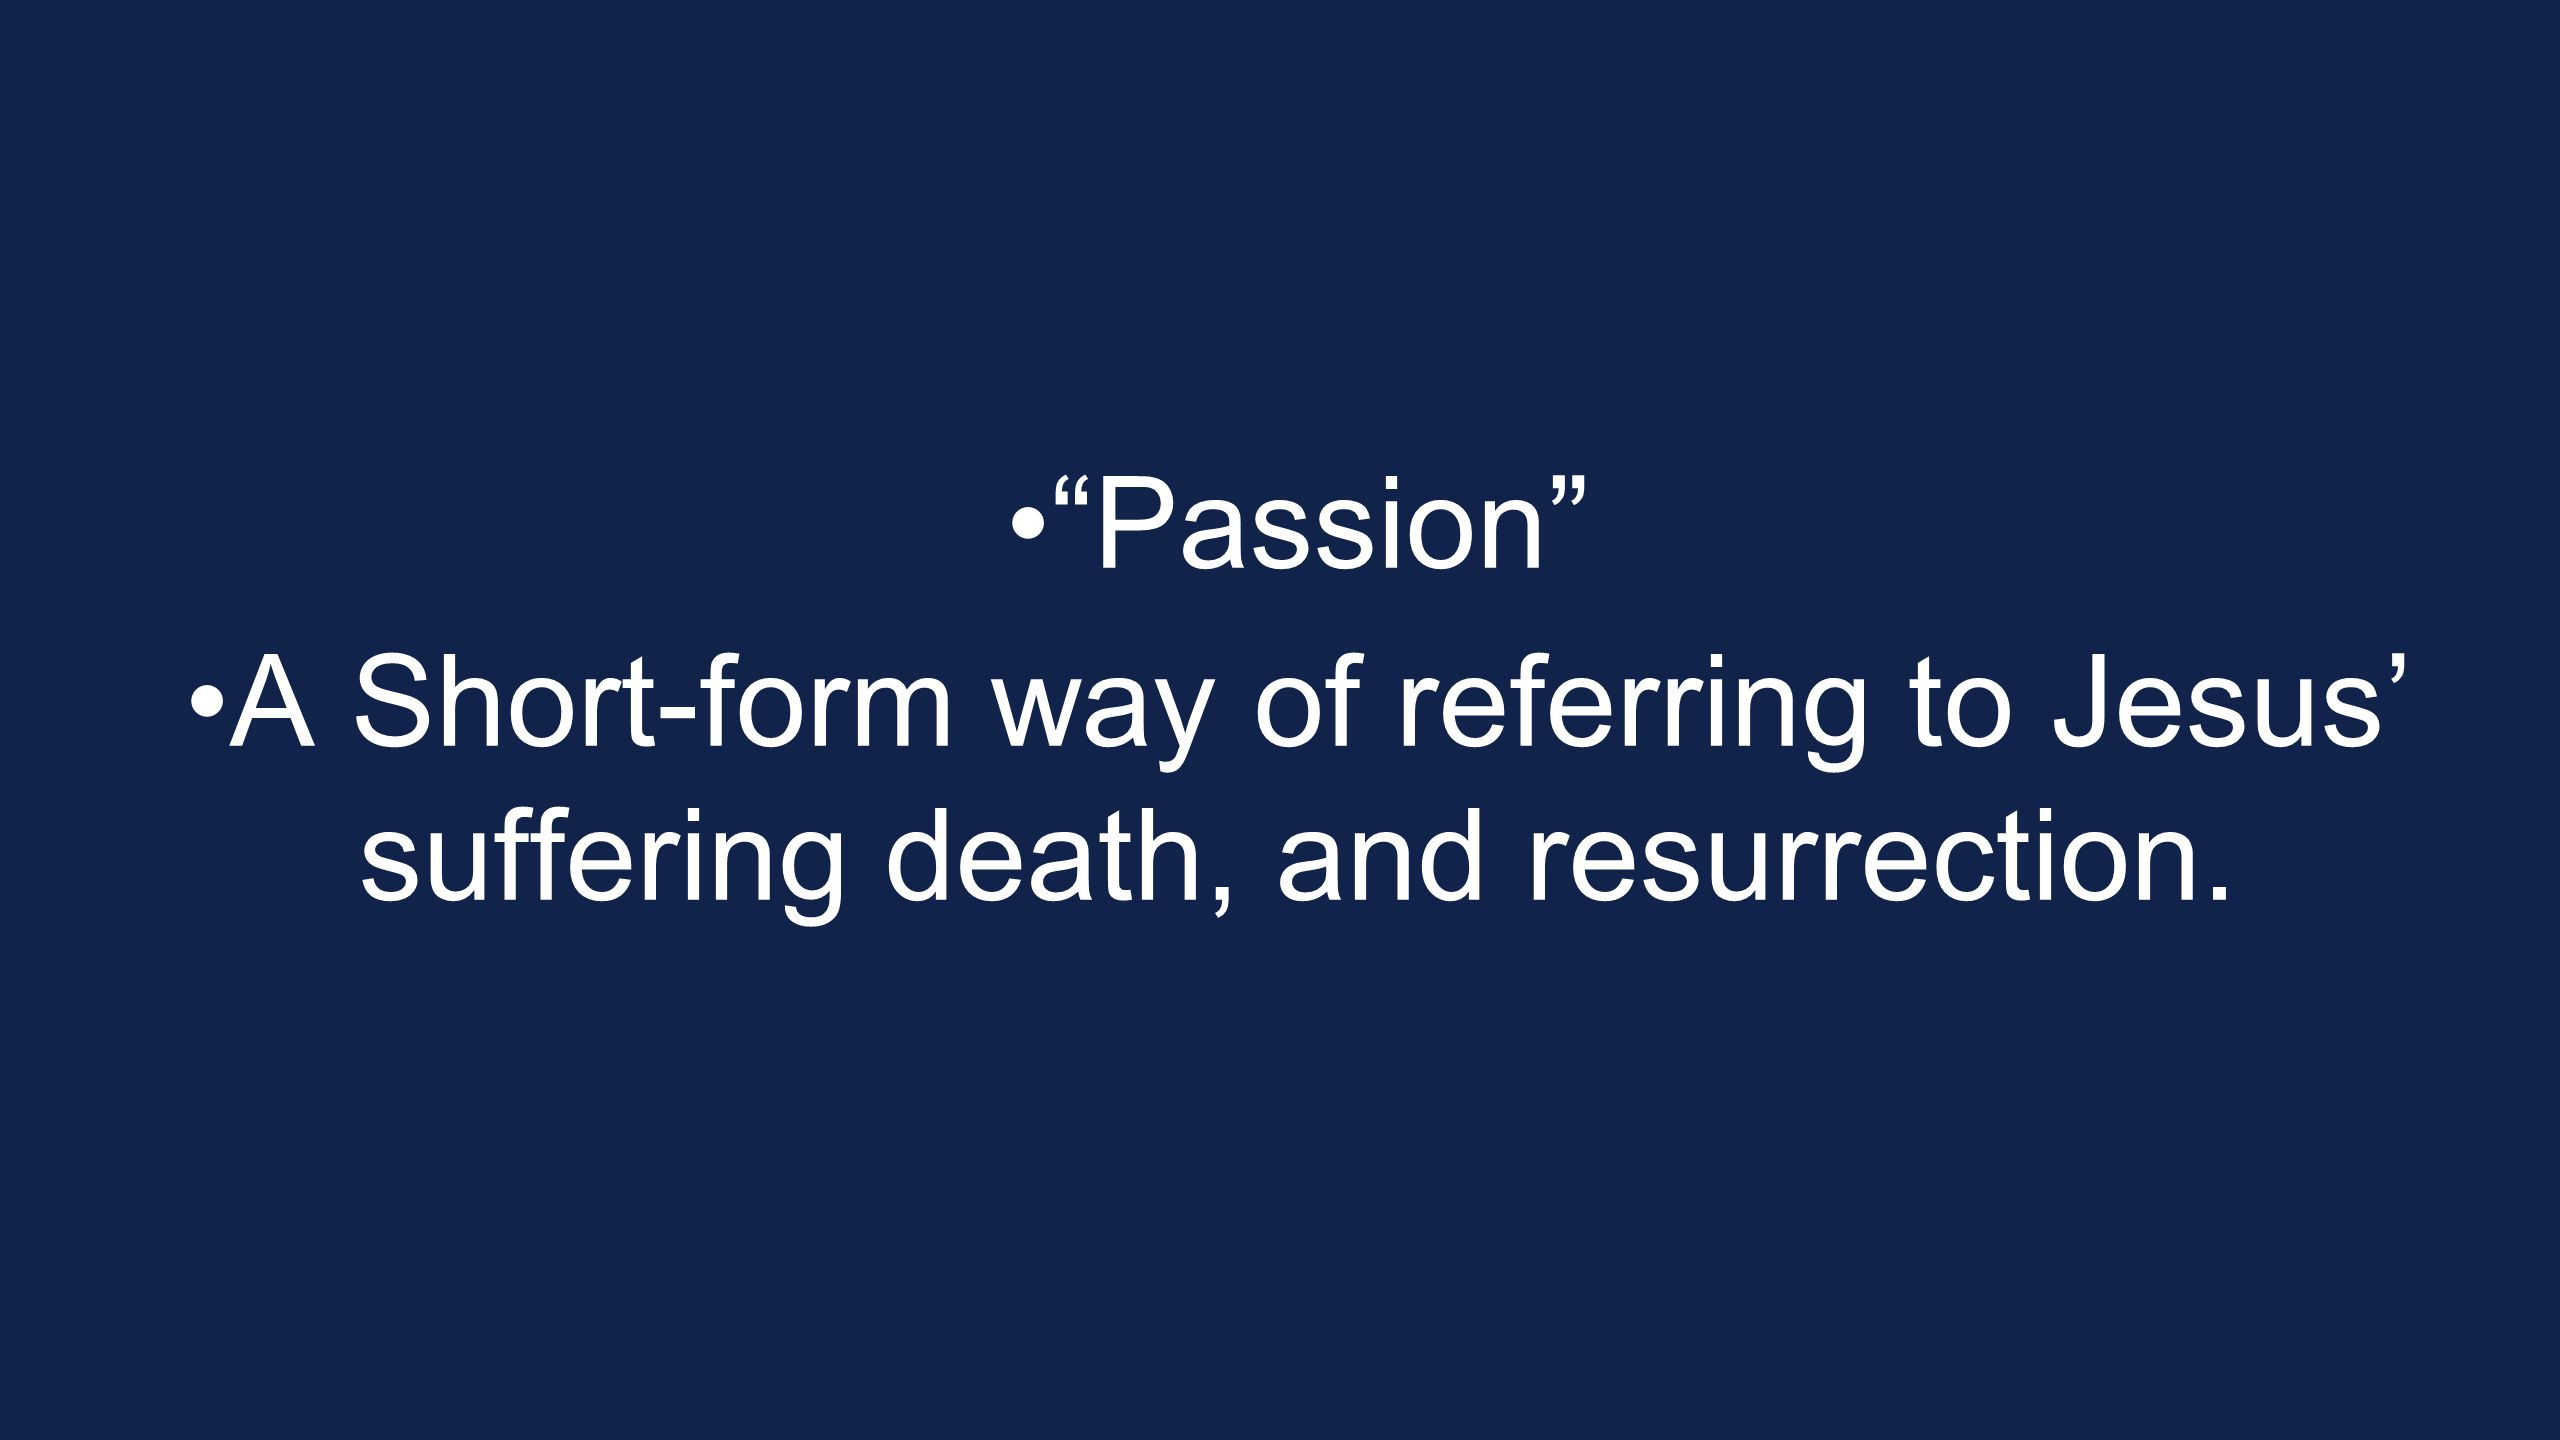 Passion A Short-form way of referring to Jesus' suffering death, and resurrection.